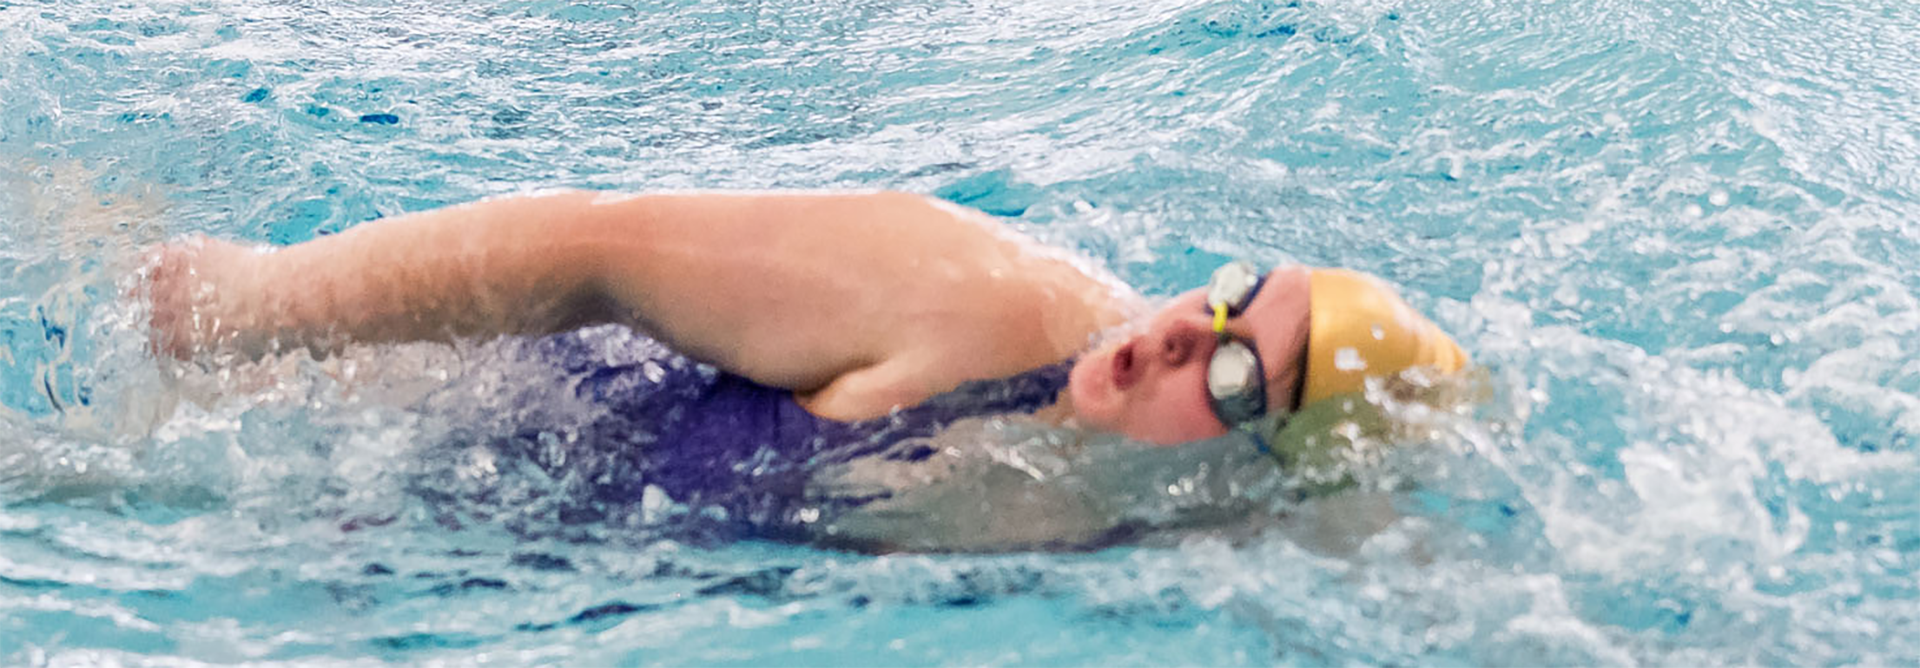 Special Olympics Minnesota swimmers swimming in pool